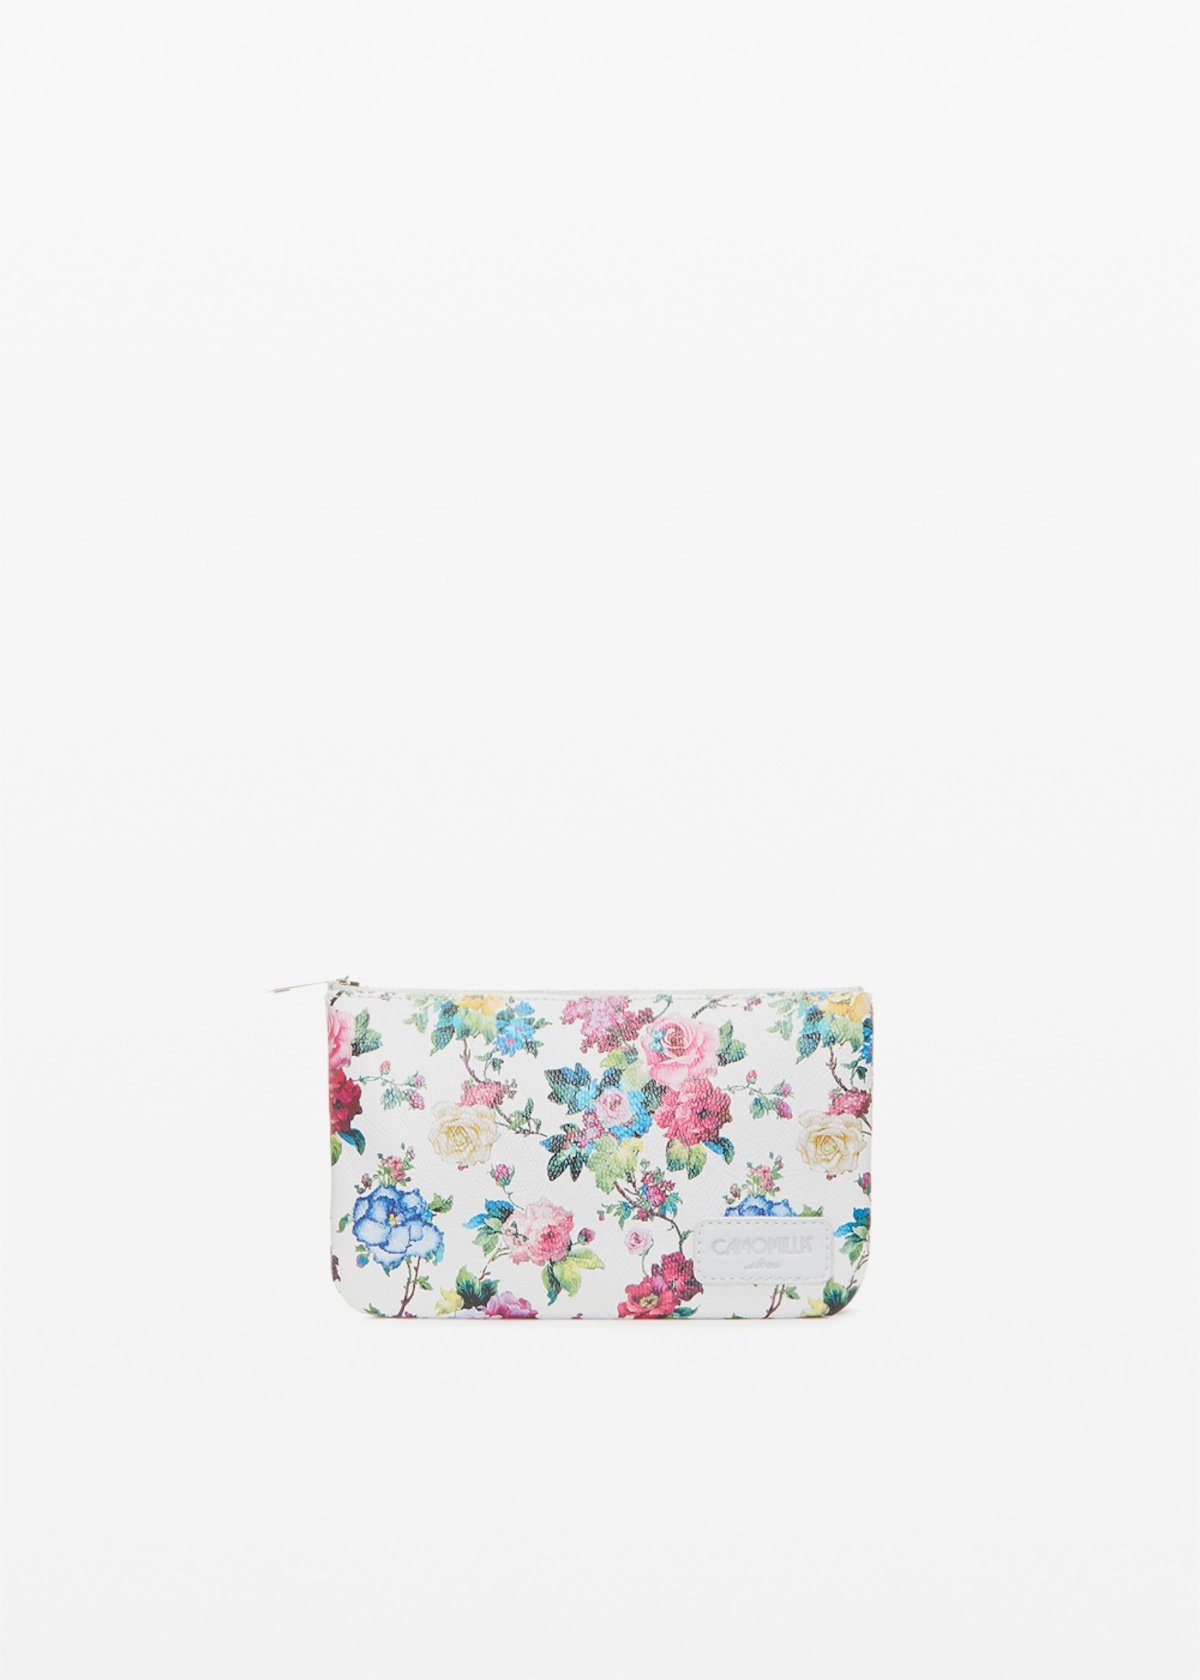 Tongaflo1 faux leather small bag with flowers print